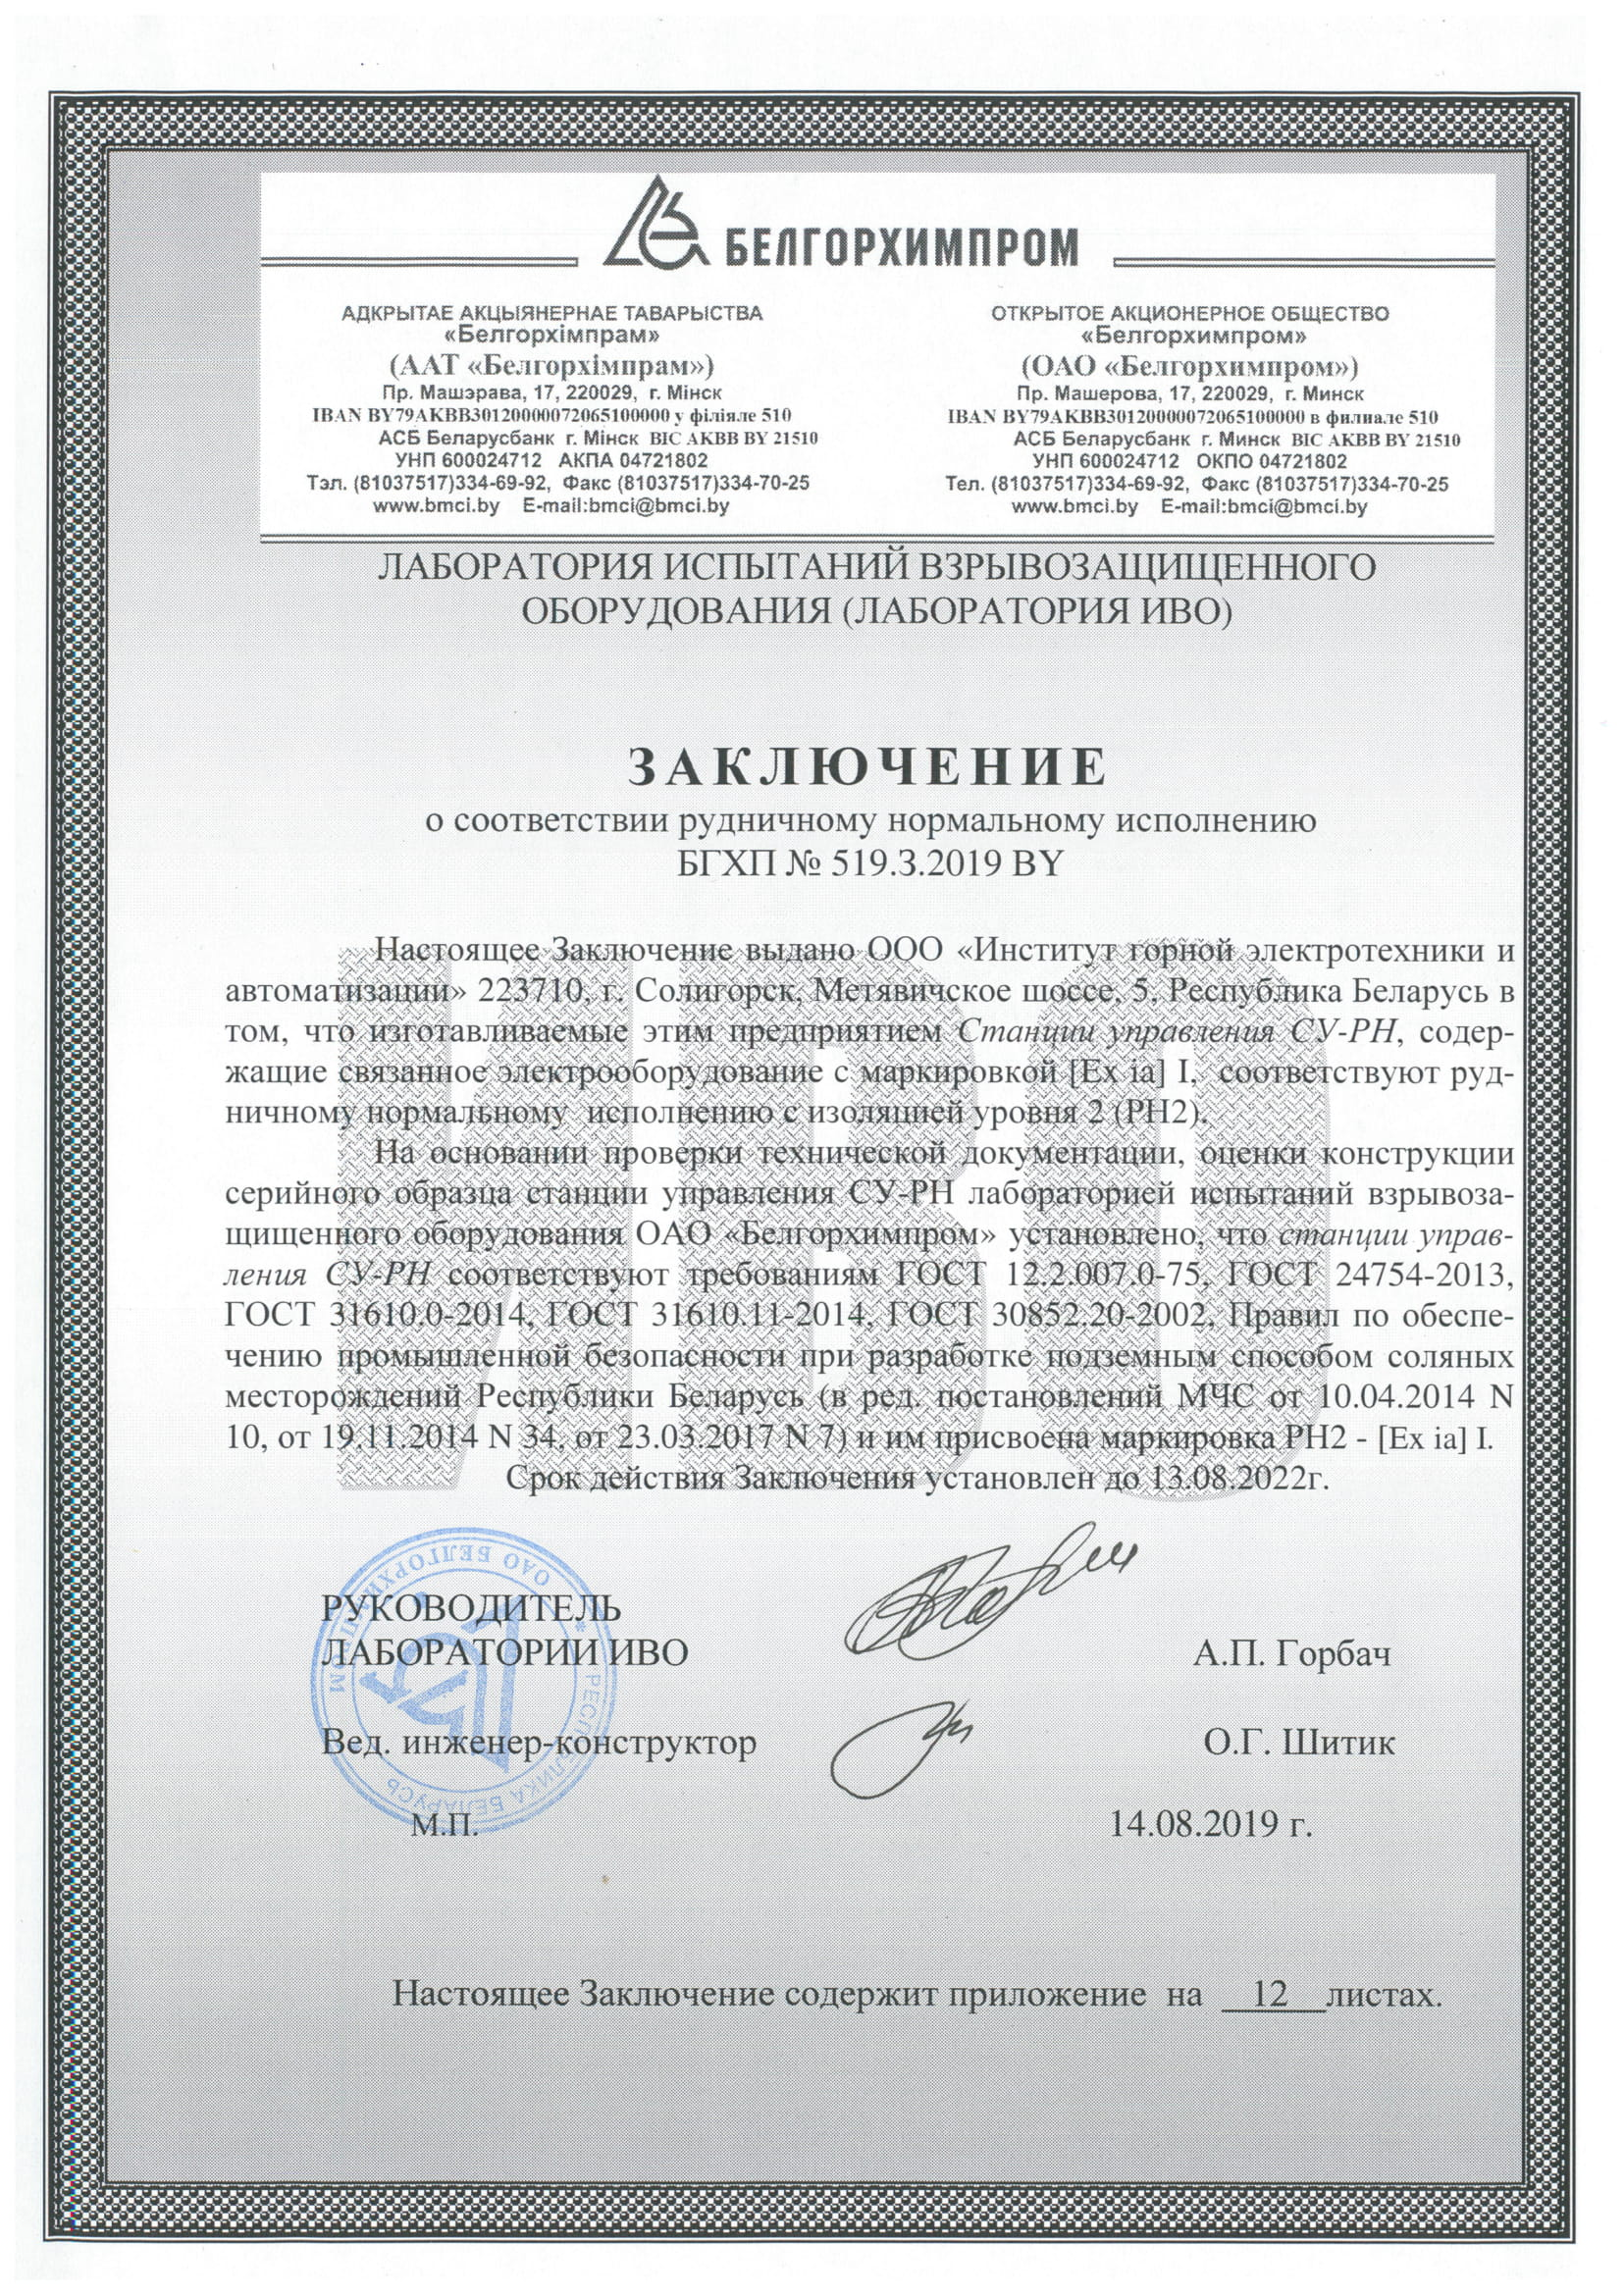 Statement of conformity to standard mining version by Belgorkhimprom No.519.З.2019 BY valid till 13.08.2022